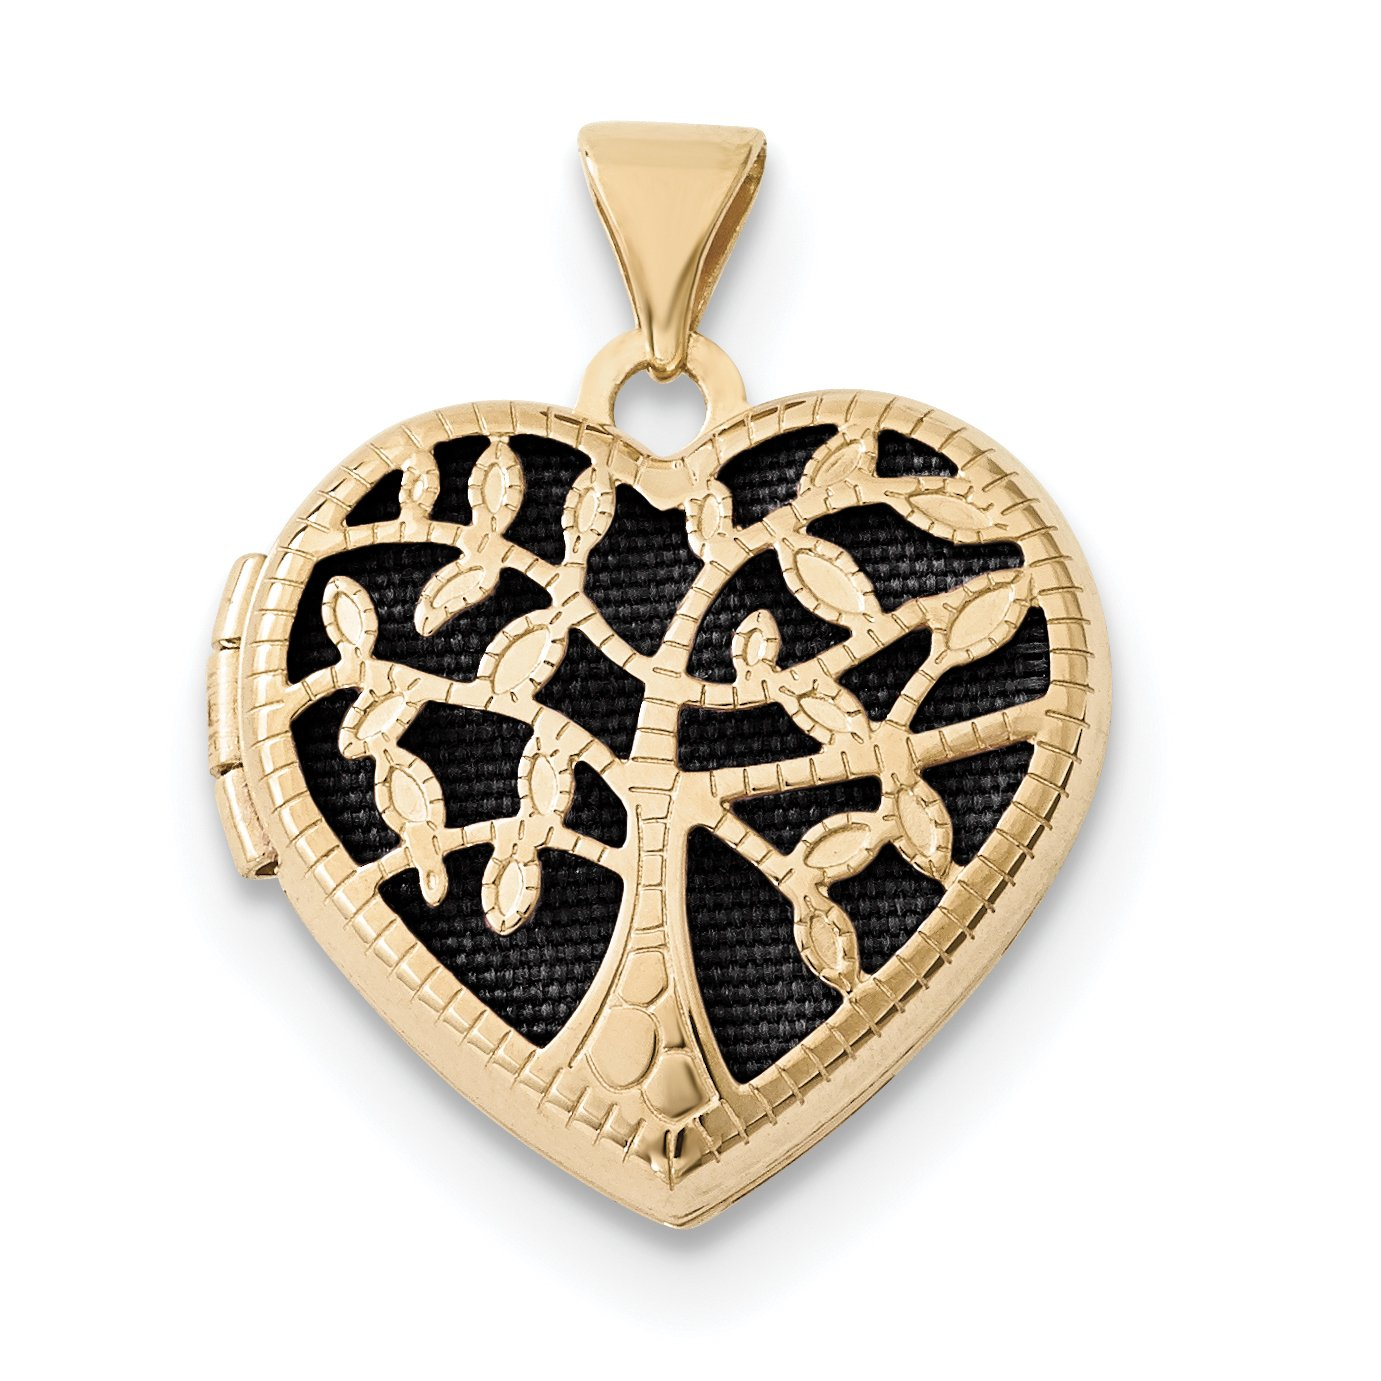 ICE CARATS 14k Yellow Gold 18mm Heart Tree Photo Pendant Charm Locket Chain Necklace That Holds Pictures Fine Jewelry Gift Set For Women Heart